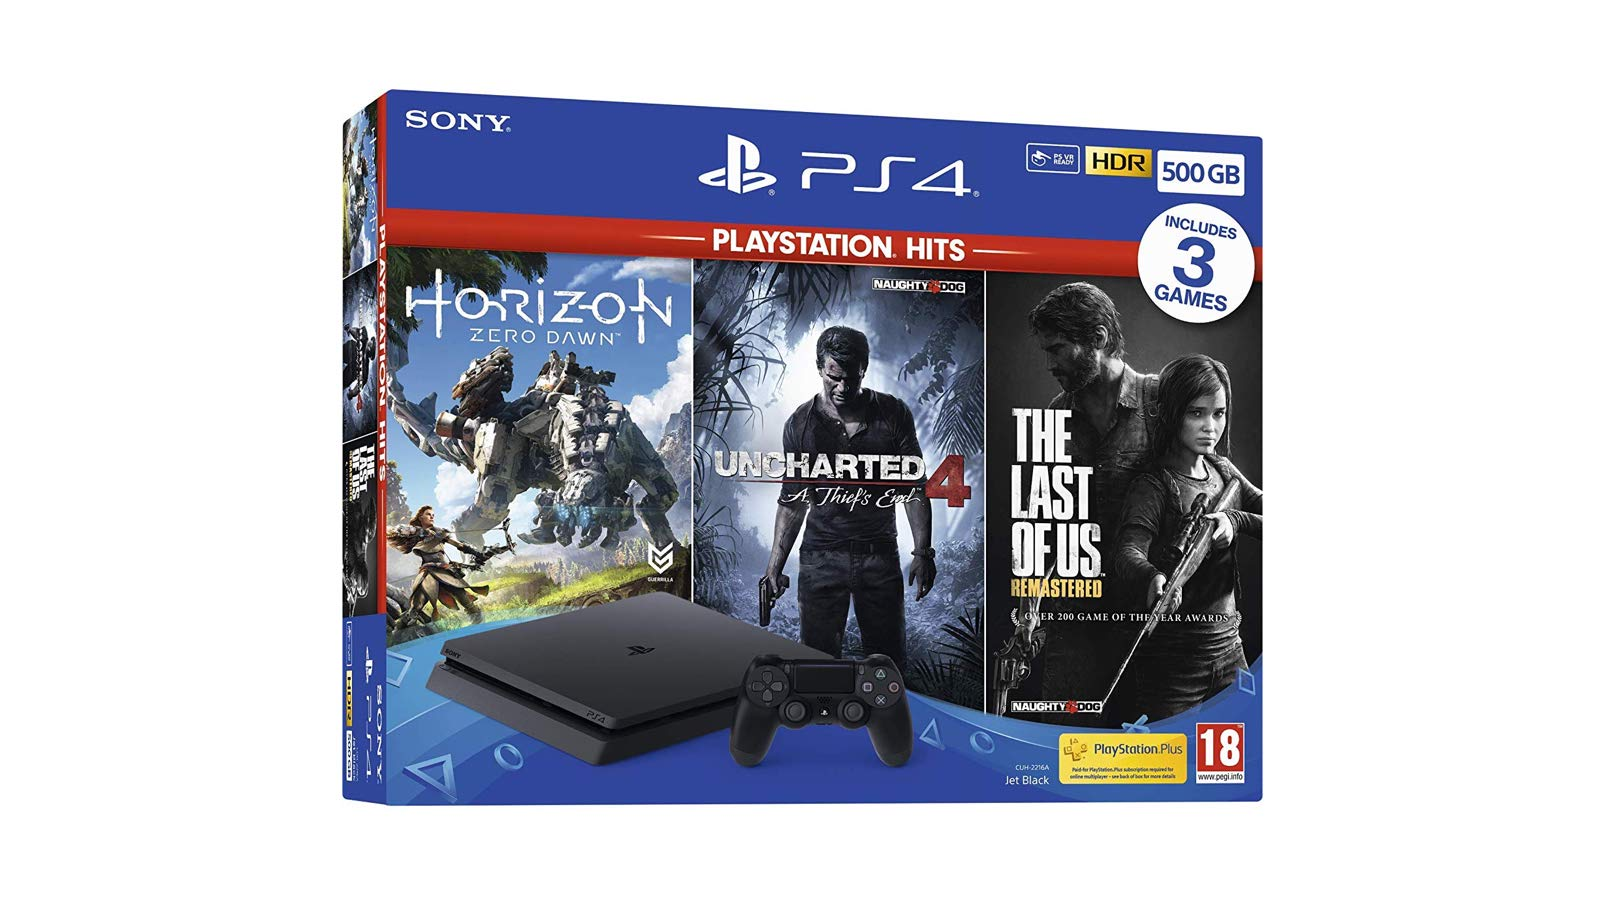 PlayStation Cyber Monday deal: get a PS4 and three awesome